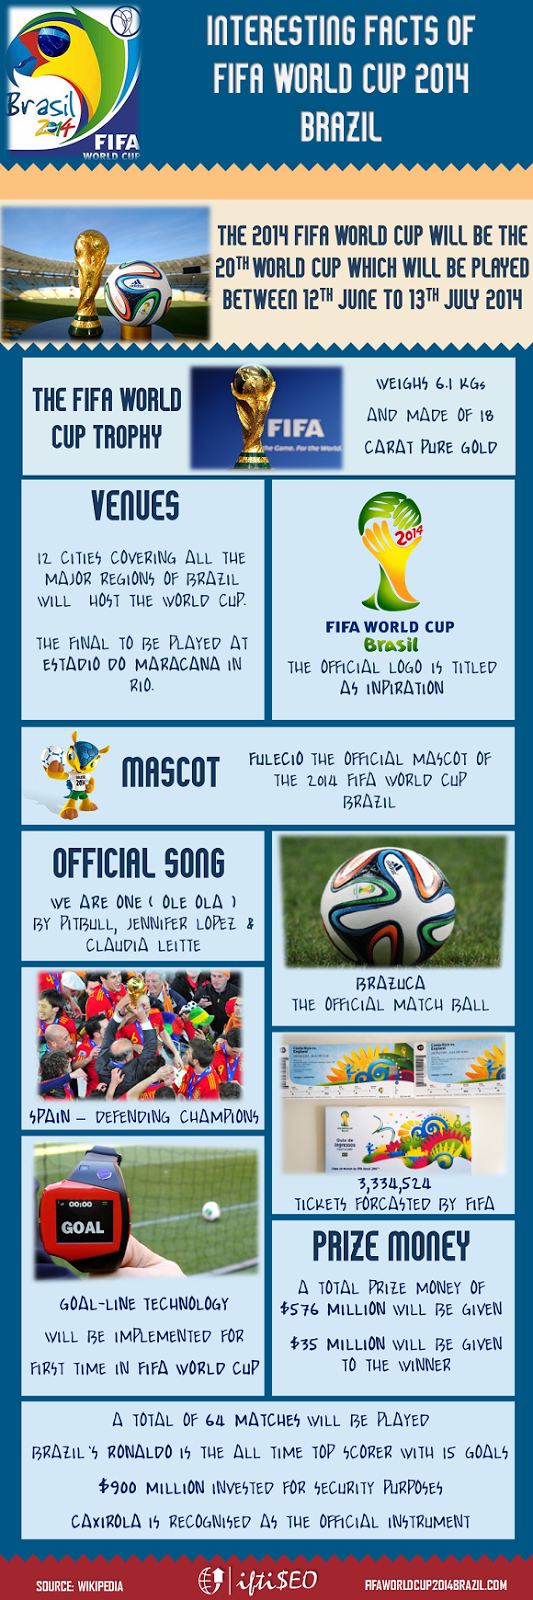 Interesting Facts of FIFA World Cup 2014 Brazil [Infographic]